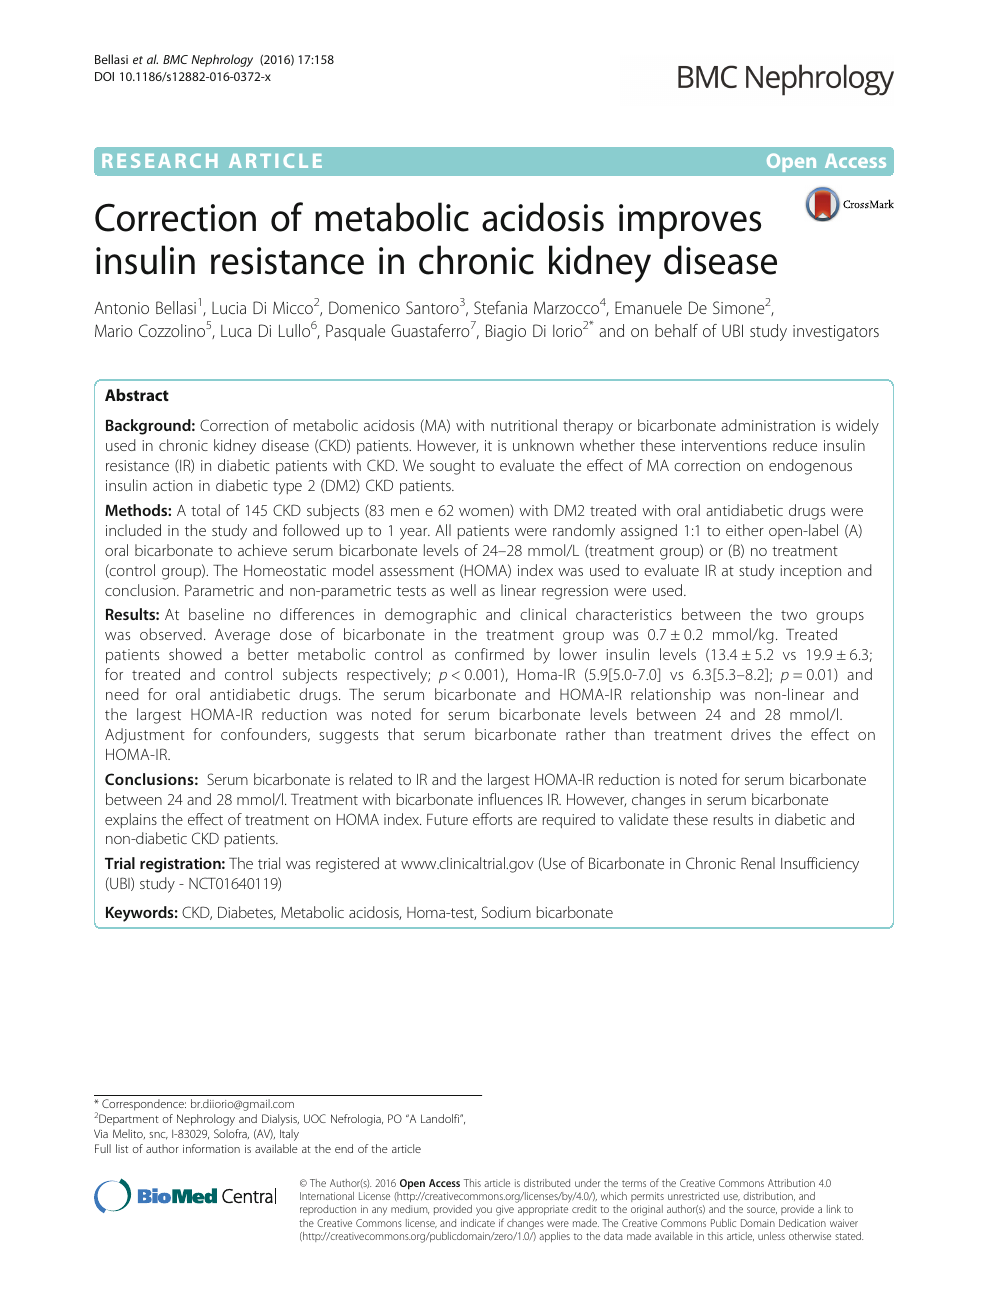 Correction Of Metabolic Acidosis Improves Insulin Resistance In Chronic Kidney Disease Topic Of Research Paper In Clinical Medicine Download Scholarly Article Pdf And Read For Free On Cyberleninka Open Science Hub